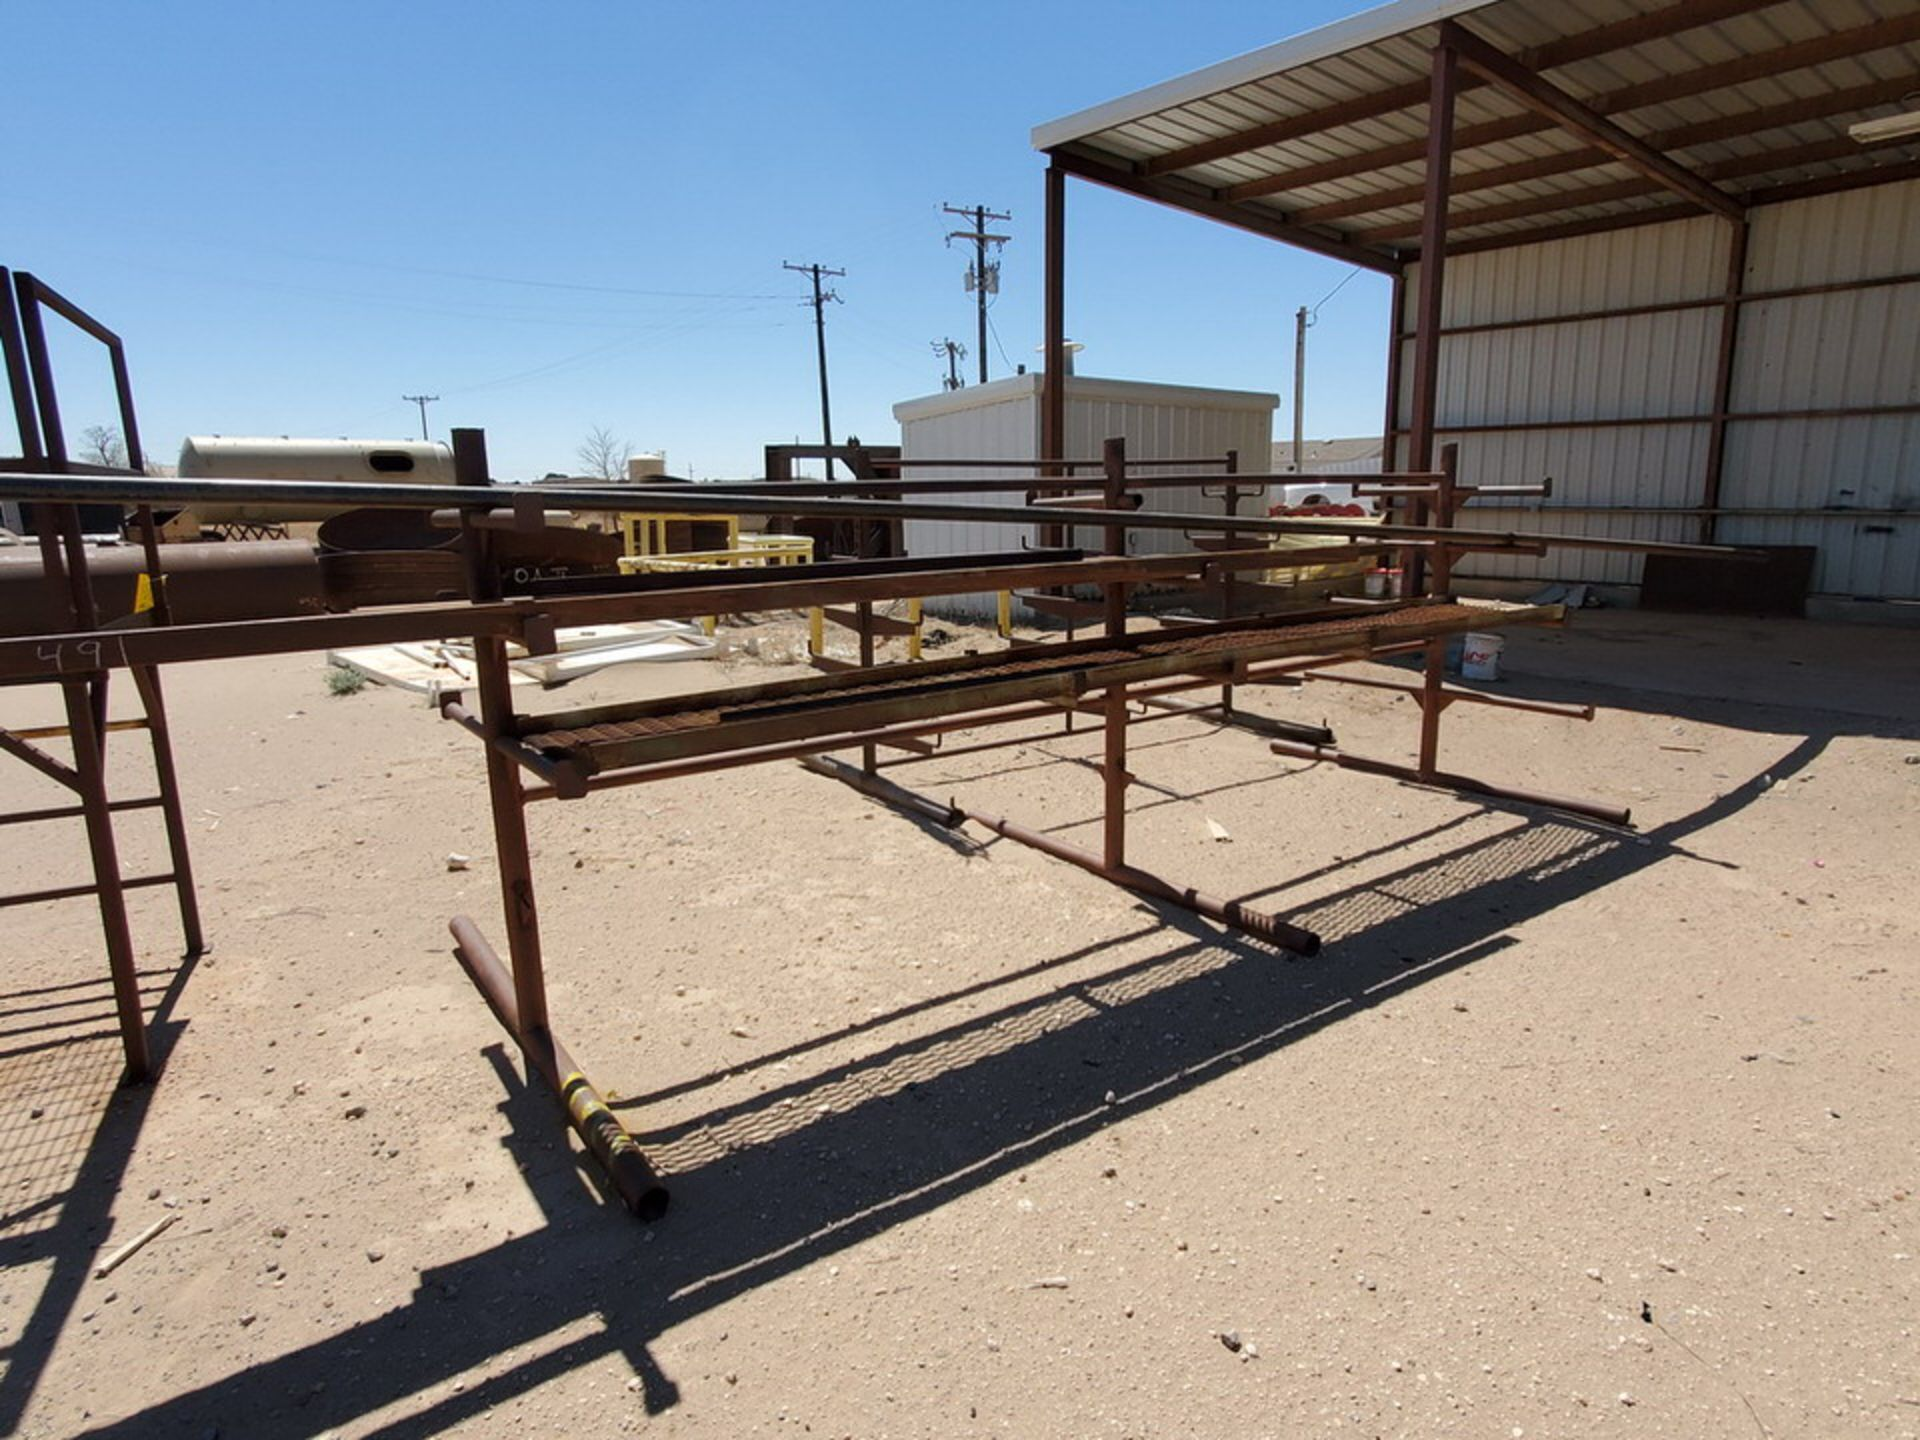 """(3) 3-Post Doublesided Cantilever Racks (2) 10' x 6' x 6'6"""", (1) 17' x 7' x 6'6"""" - Image 10 of 17"""